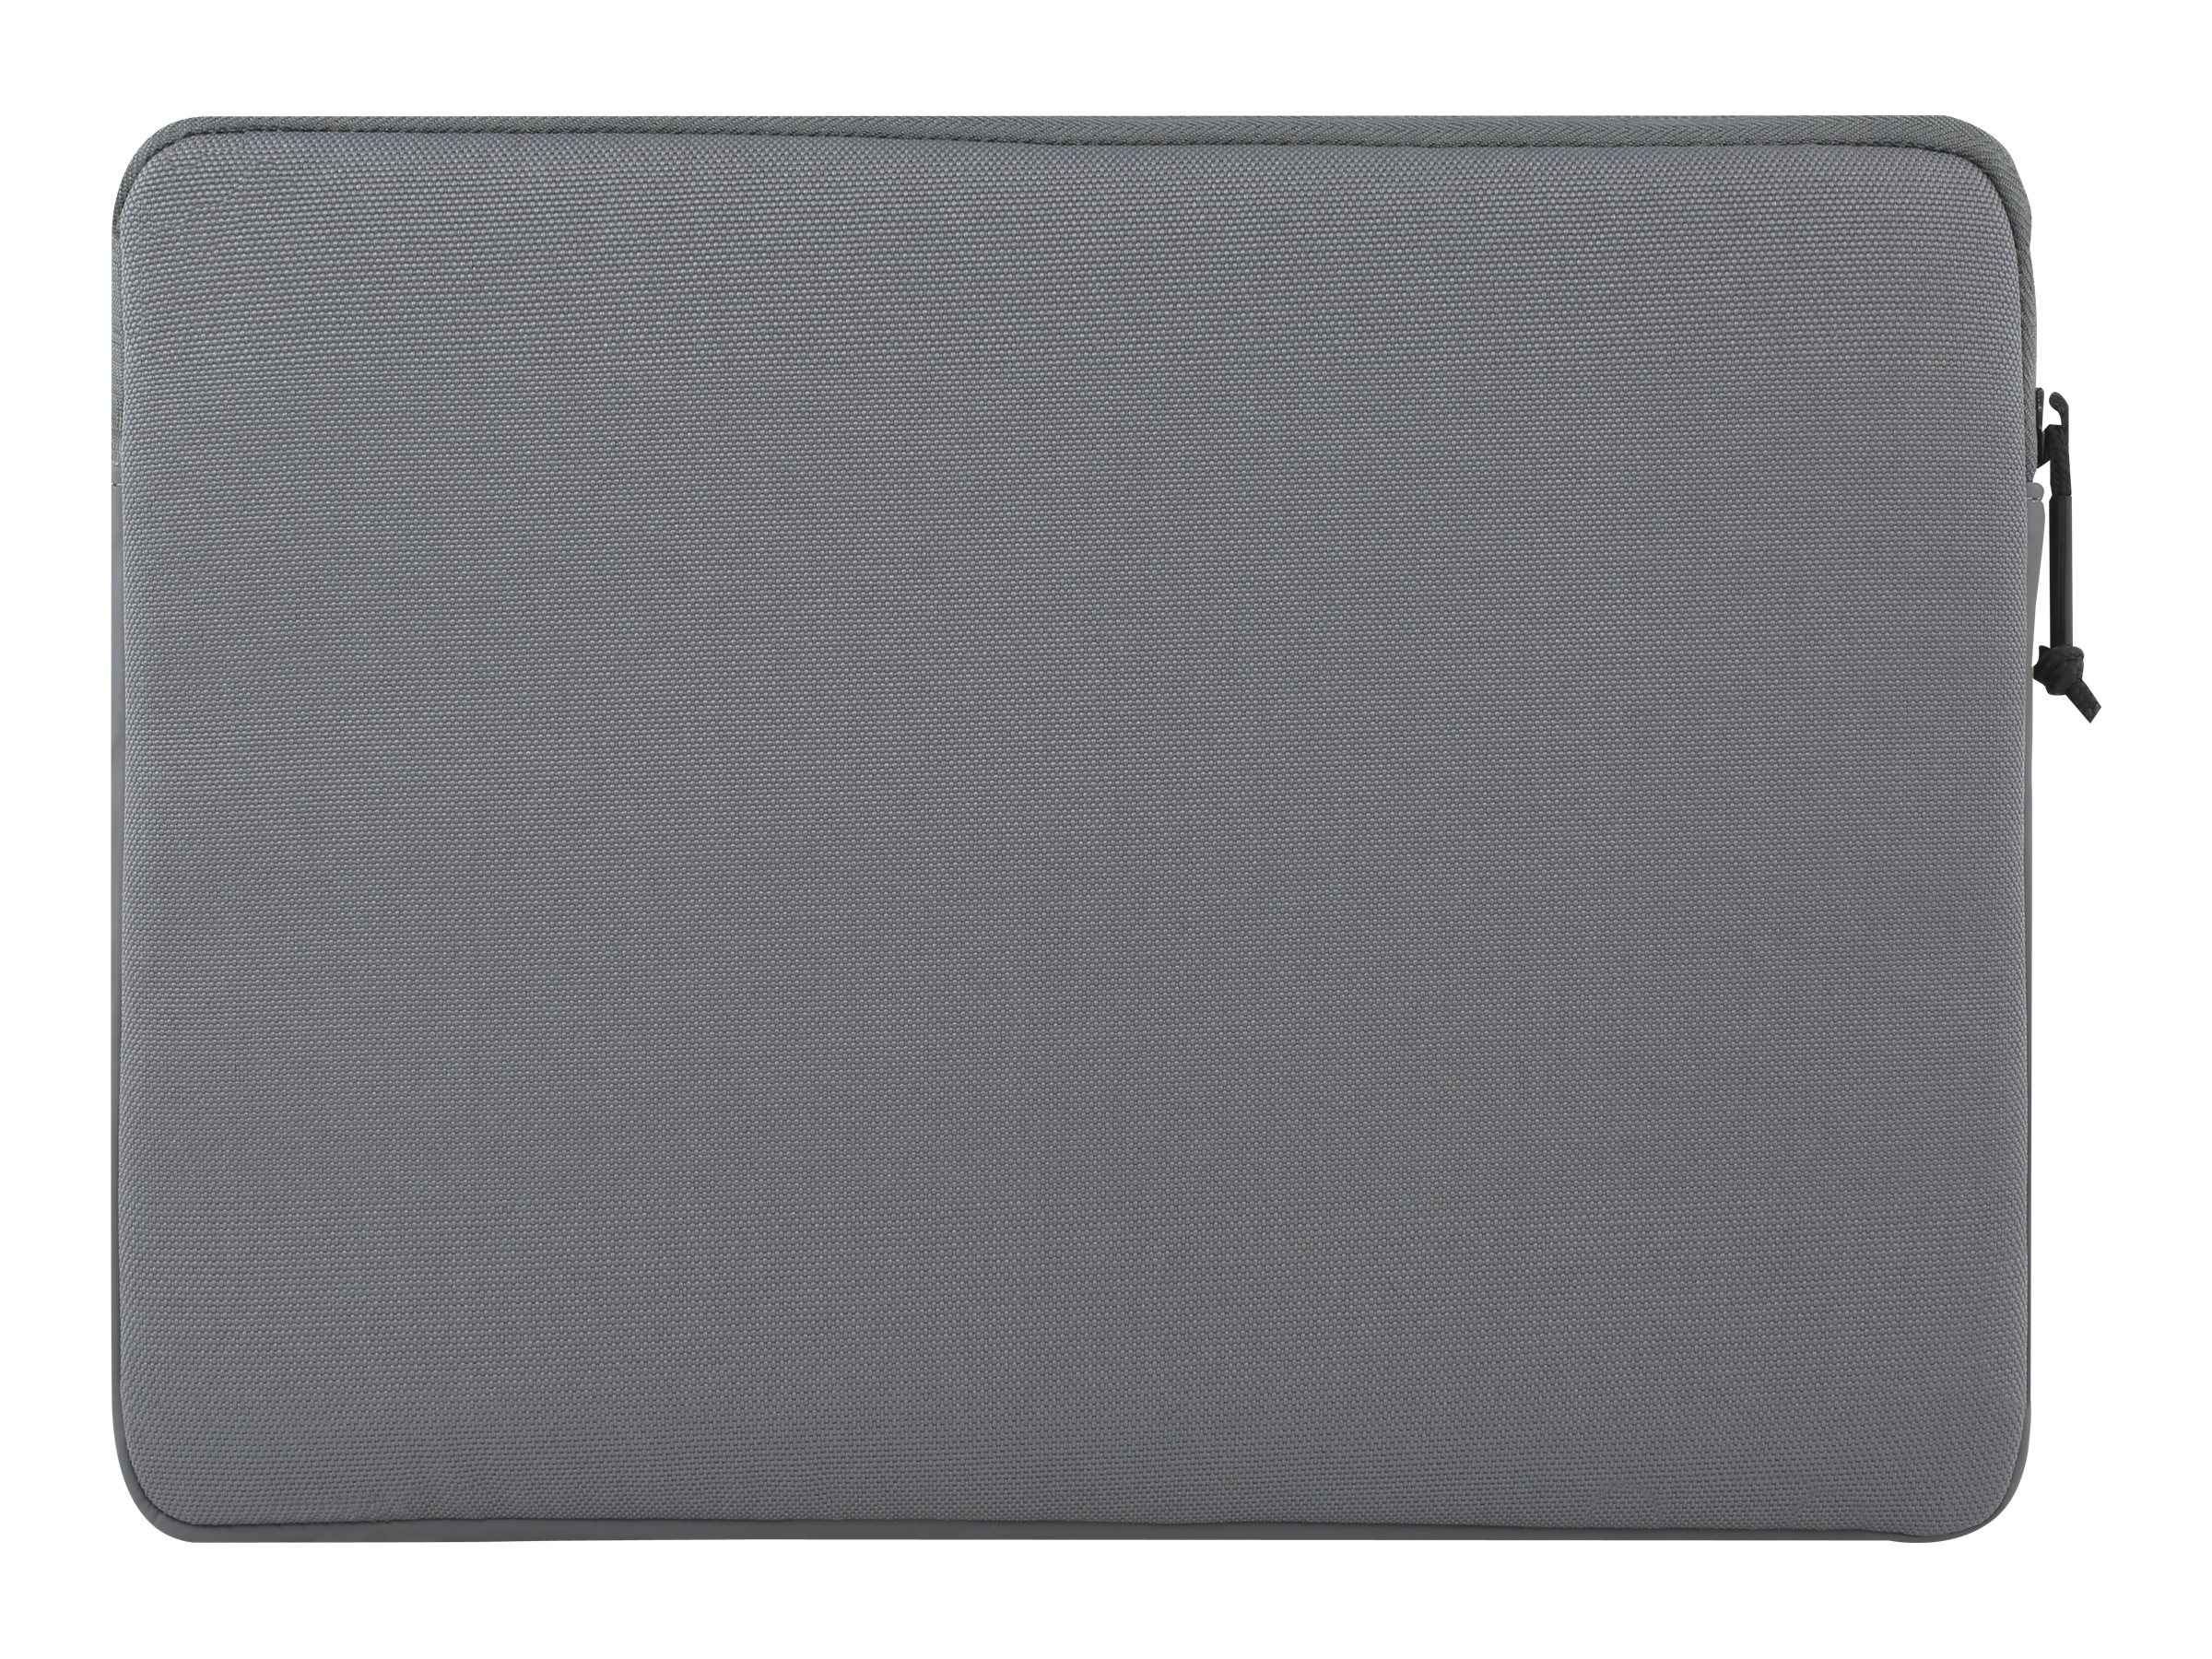 Incipio Technology IPD-292-GRY Image 4